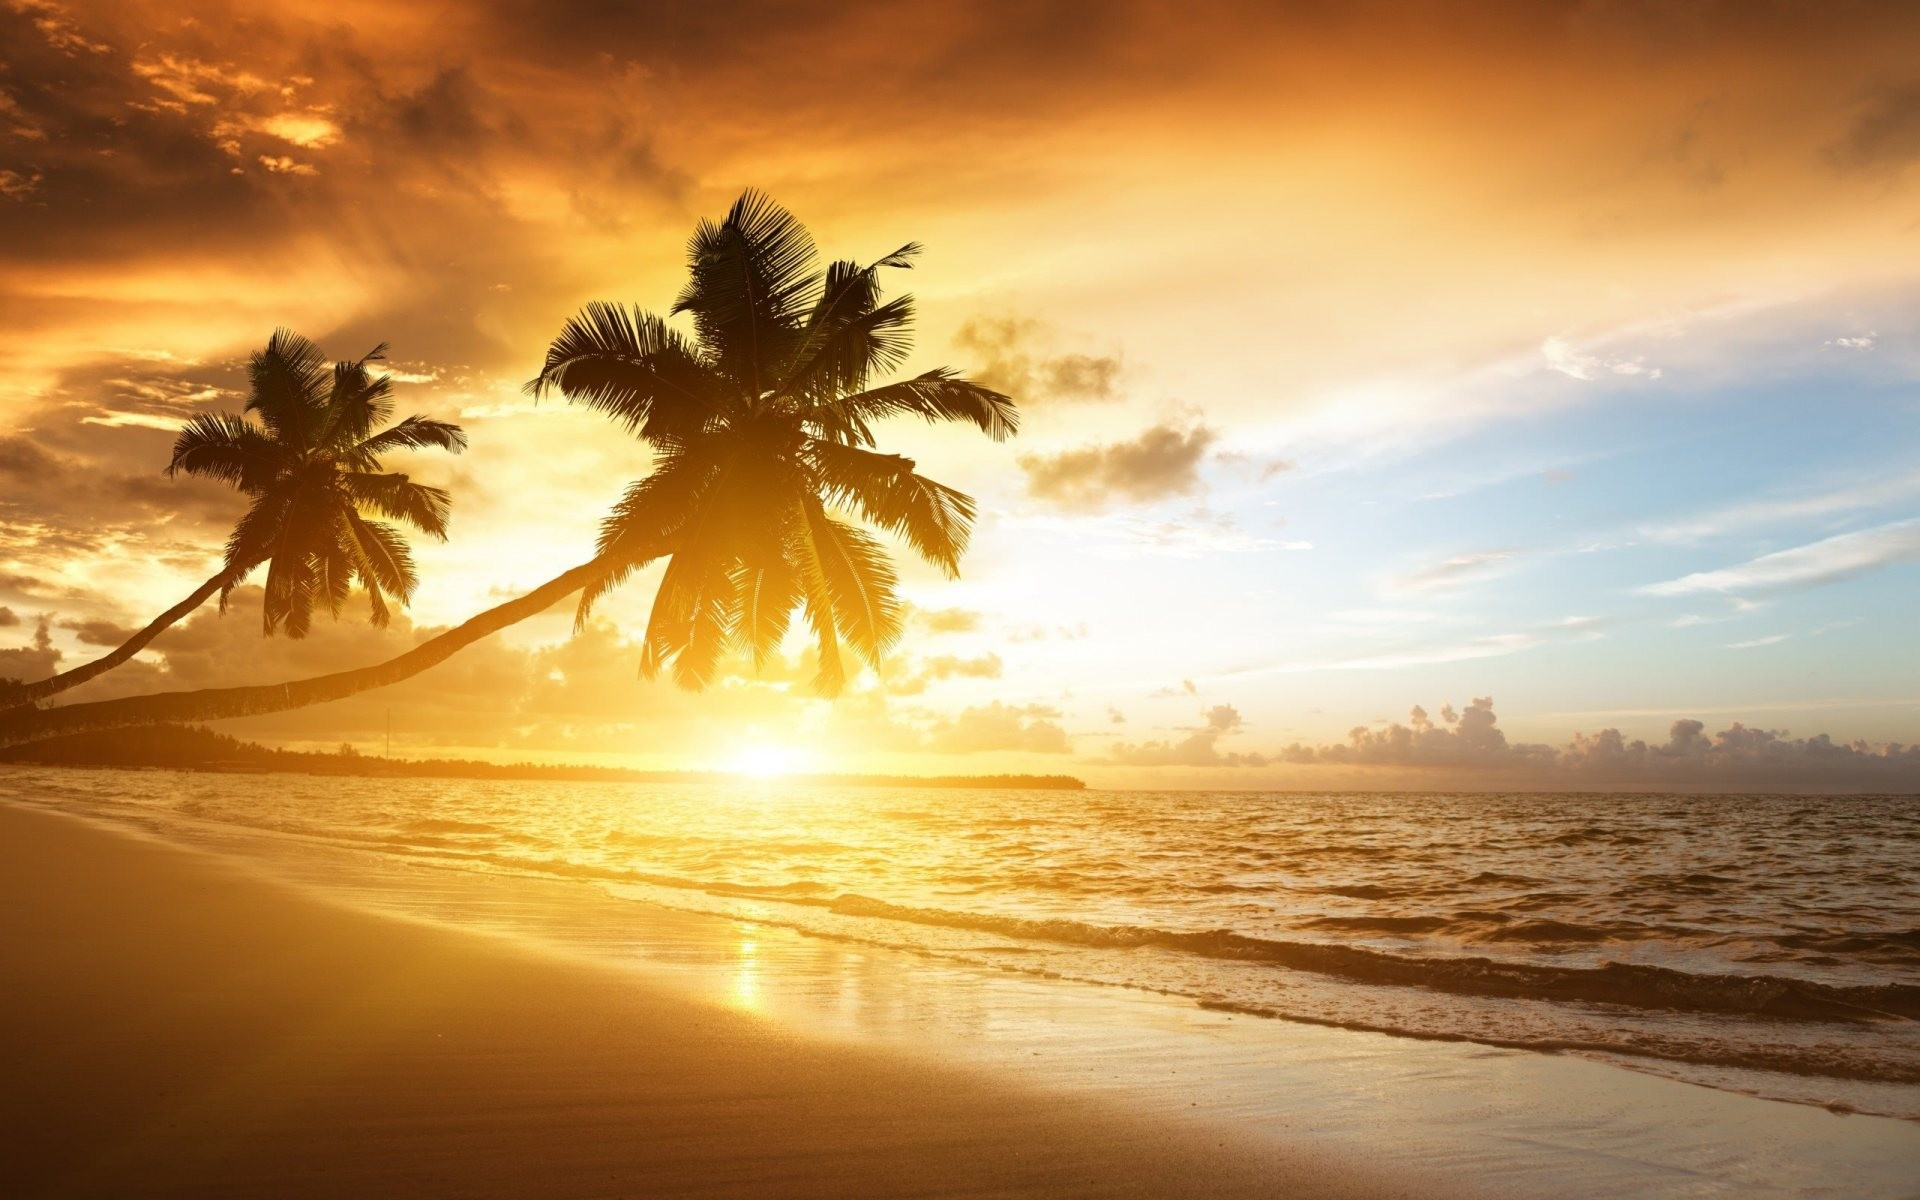 Beach Wallpaper Widescreen High Resolution 60 Images